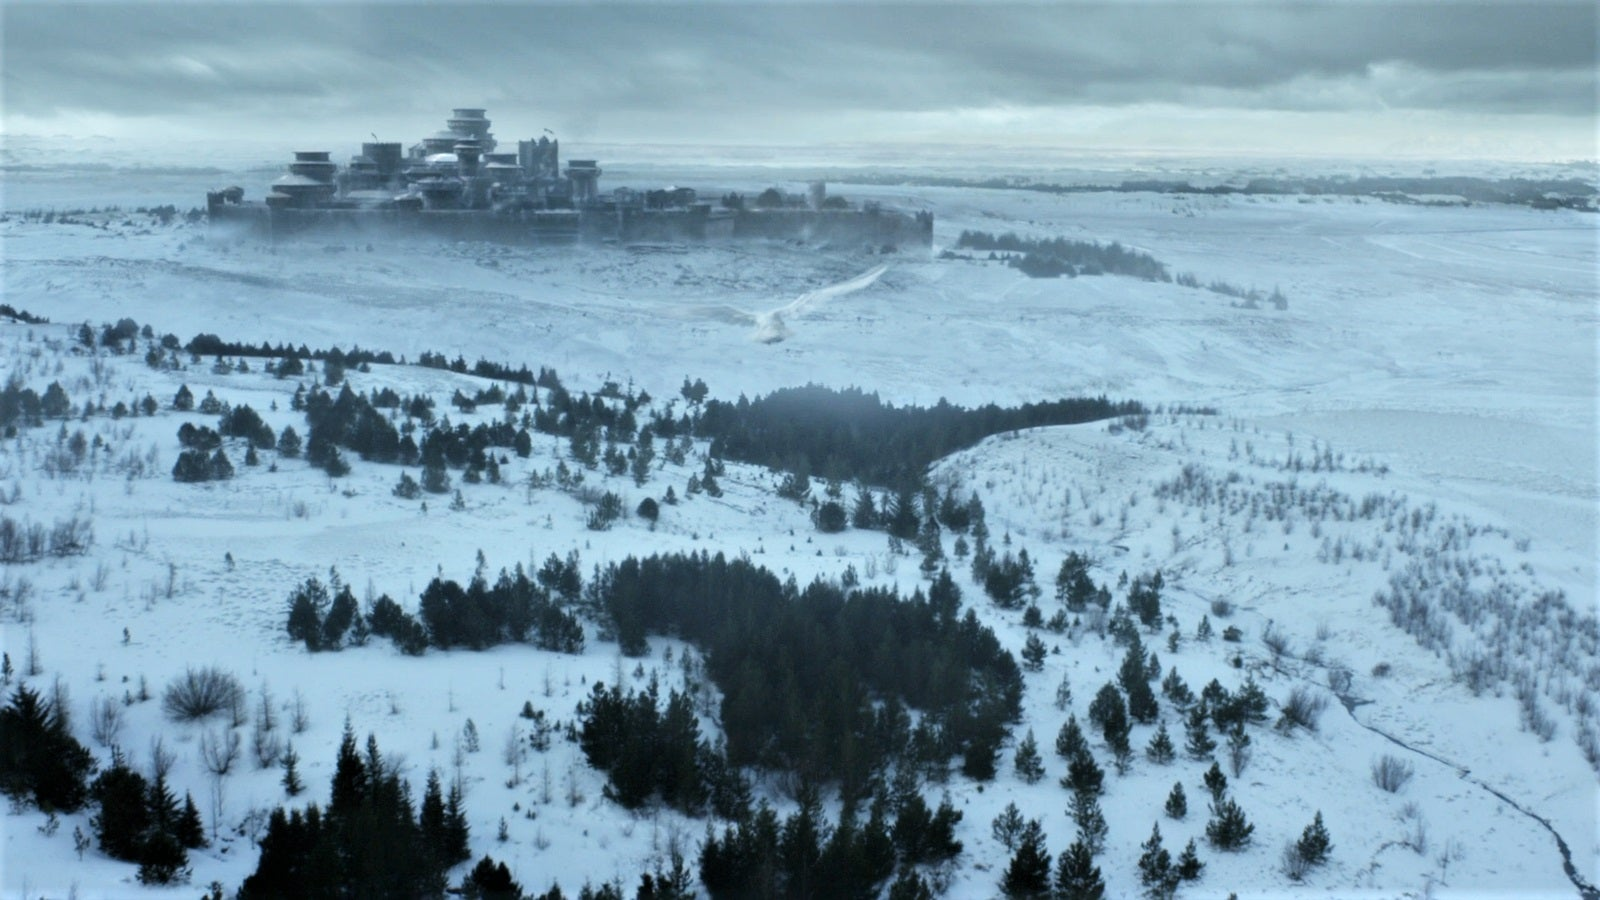 Game of Thrones is over – but its impact on Northern Ireland will live on